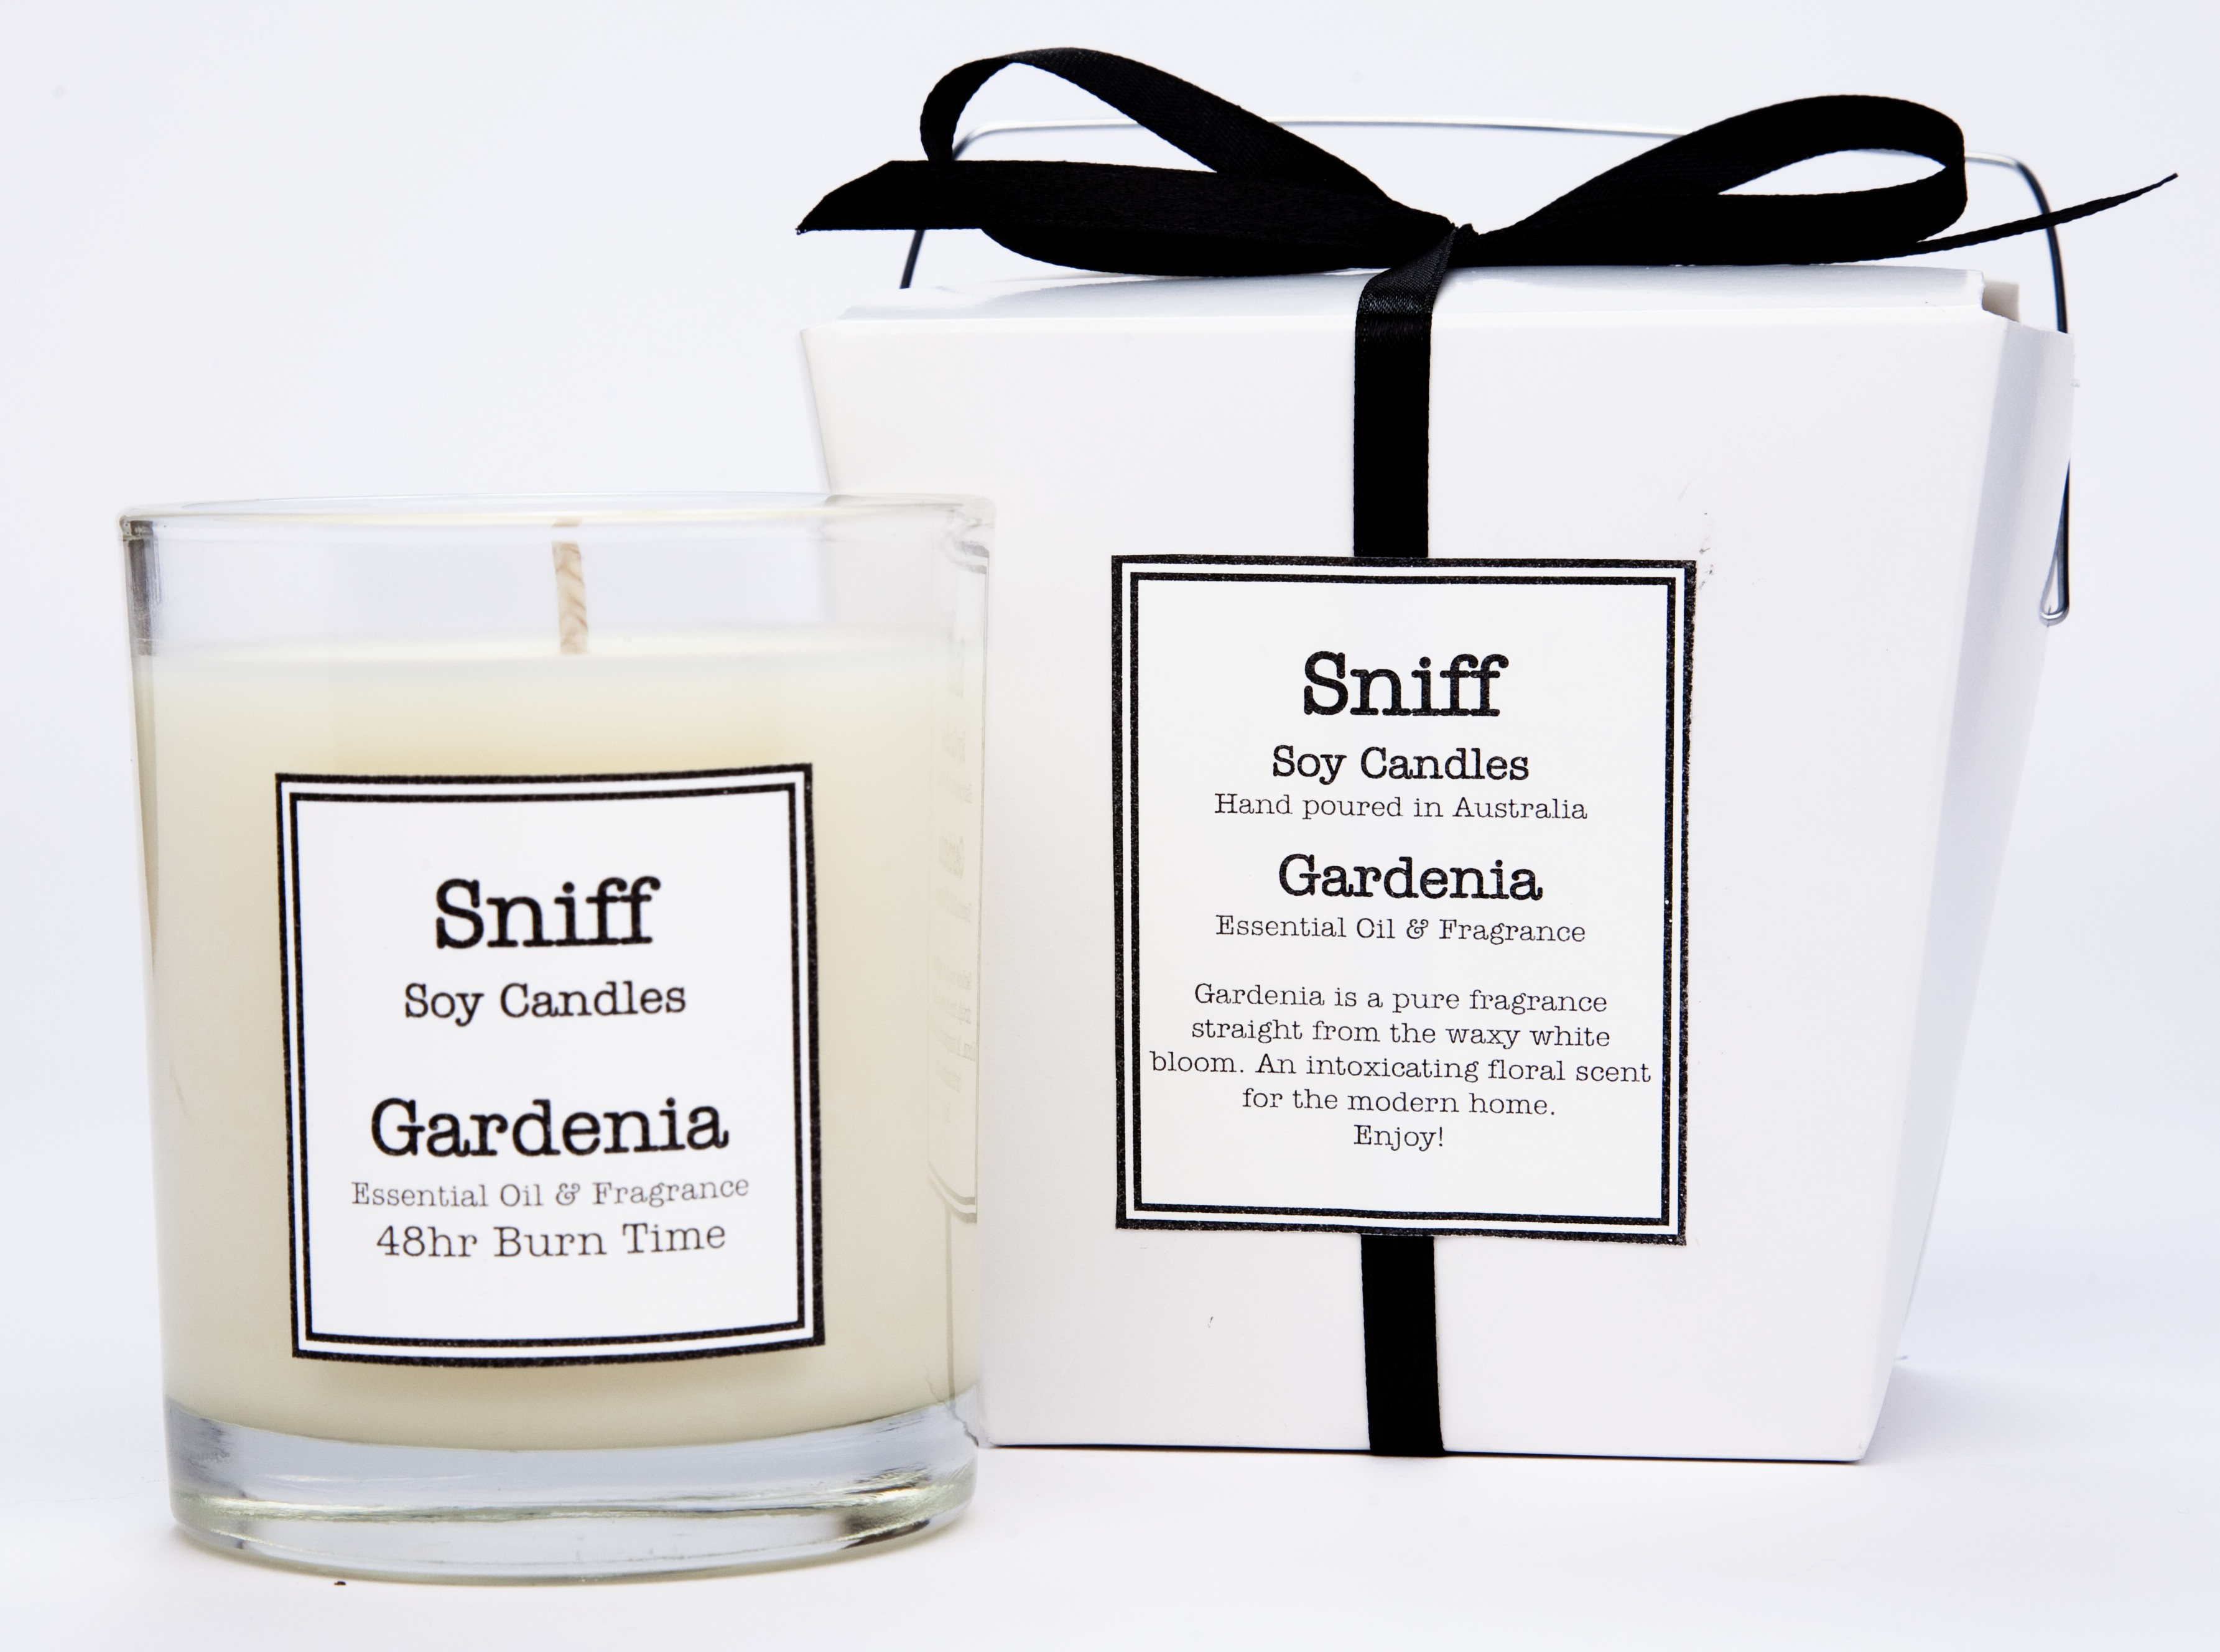 Gardenia candle – Sniff Soy Candles